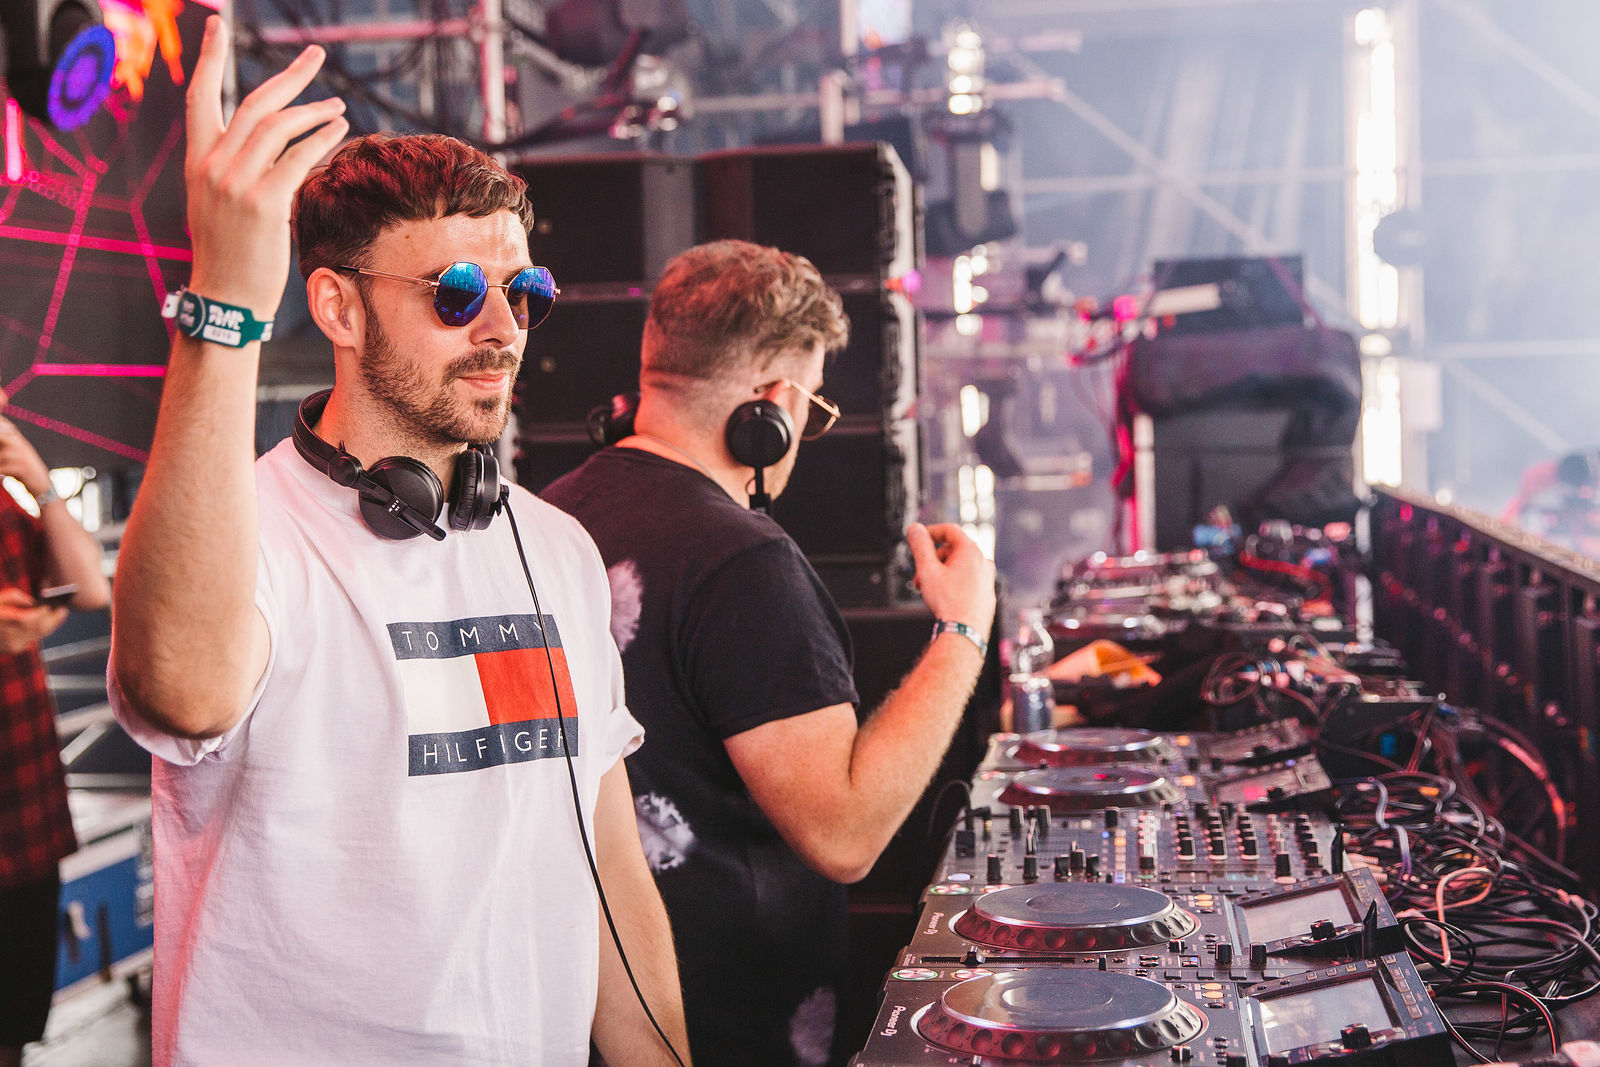 Eats Everything B2B Patrick Topping